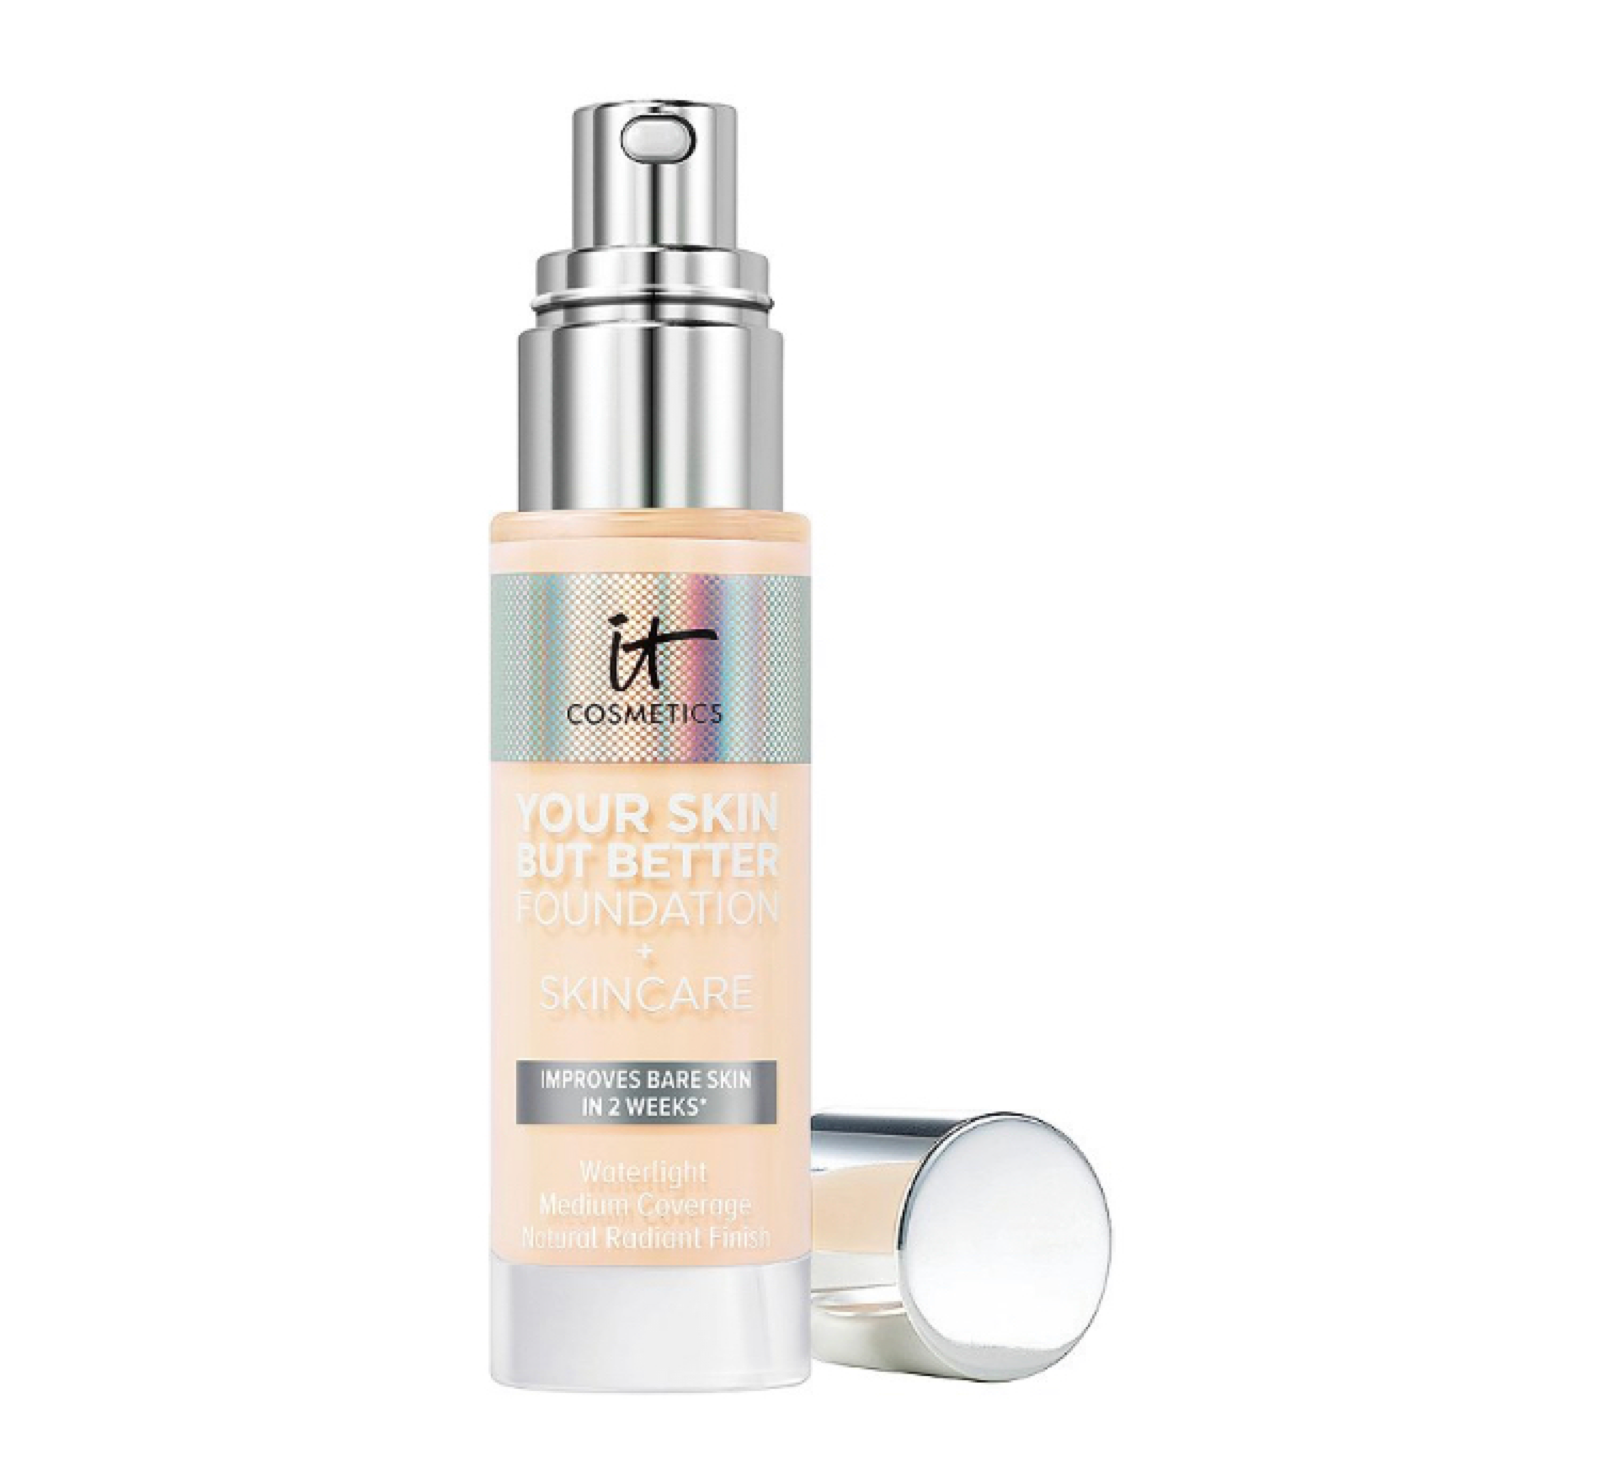 IT Cosmetics Your Skin But Better Hydrating Foundation